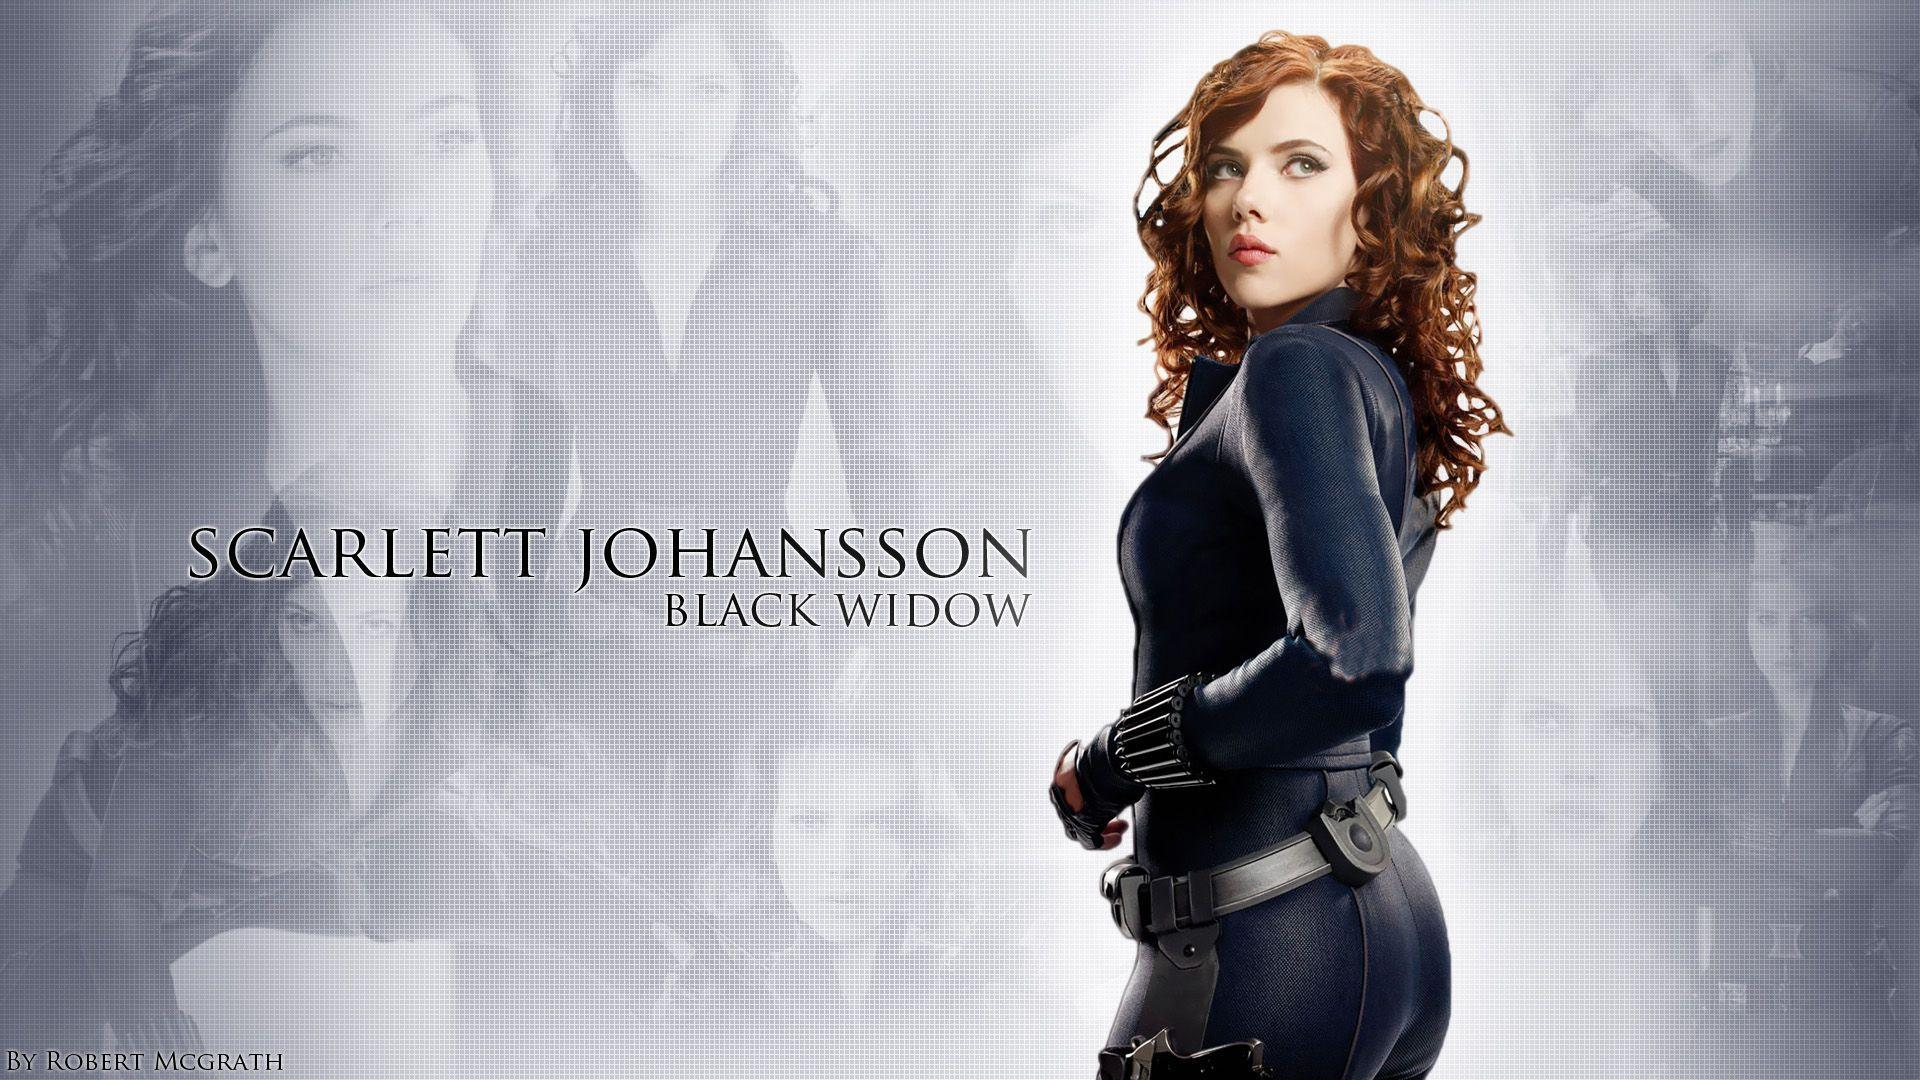 Scarlett Johansson 1920X1080 Wallpapers - Top Free Scarlett Johansson  1920X1080 Backgrounds - WallpaperAccess